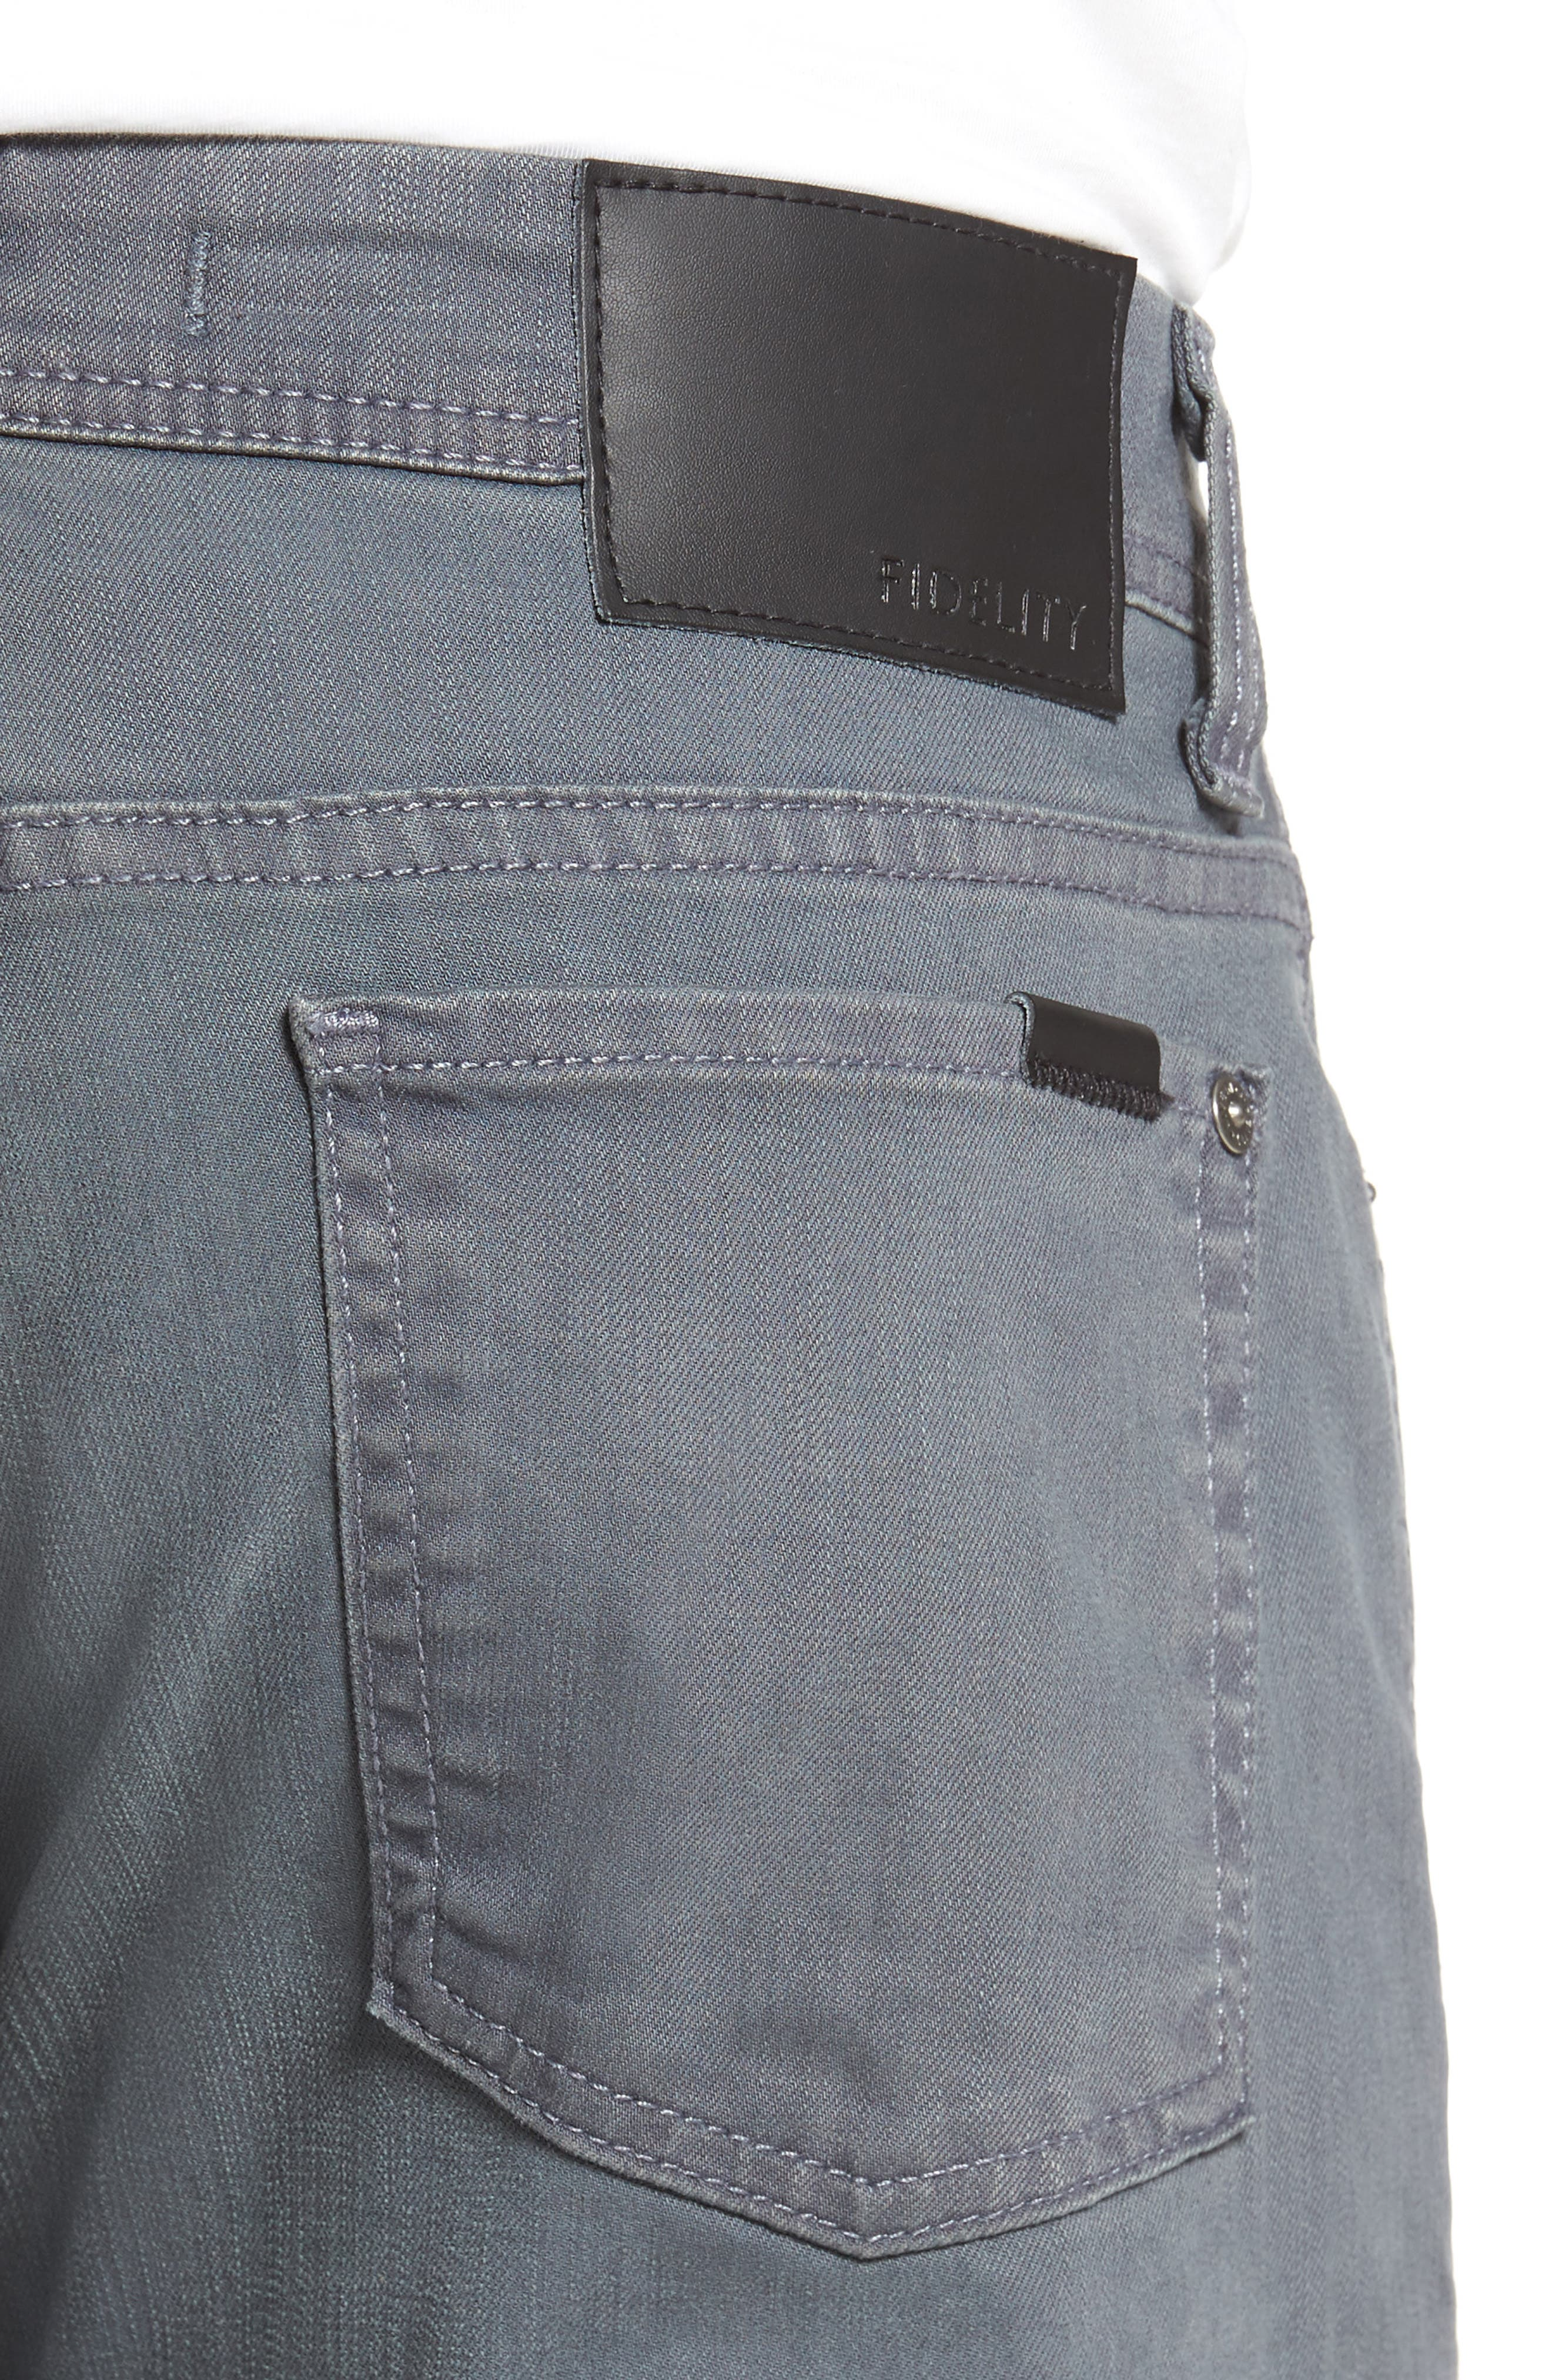 Jimmy Slim Straight Fit Jeans,                             Alternate thumbnail 4, color,                             Oyster